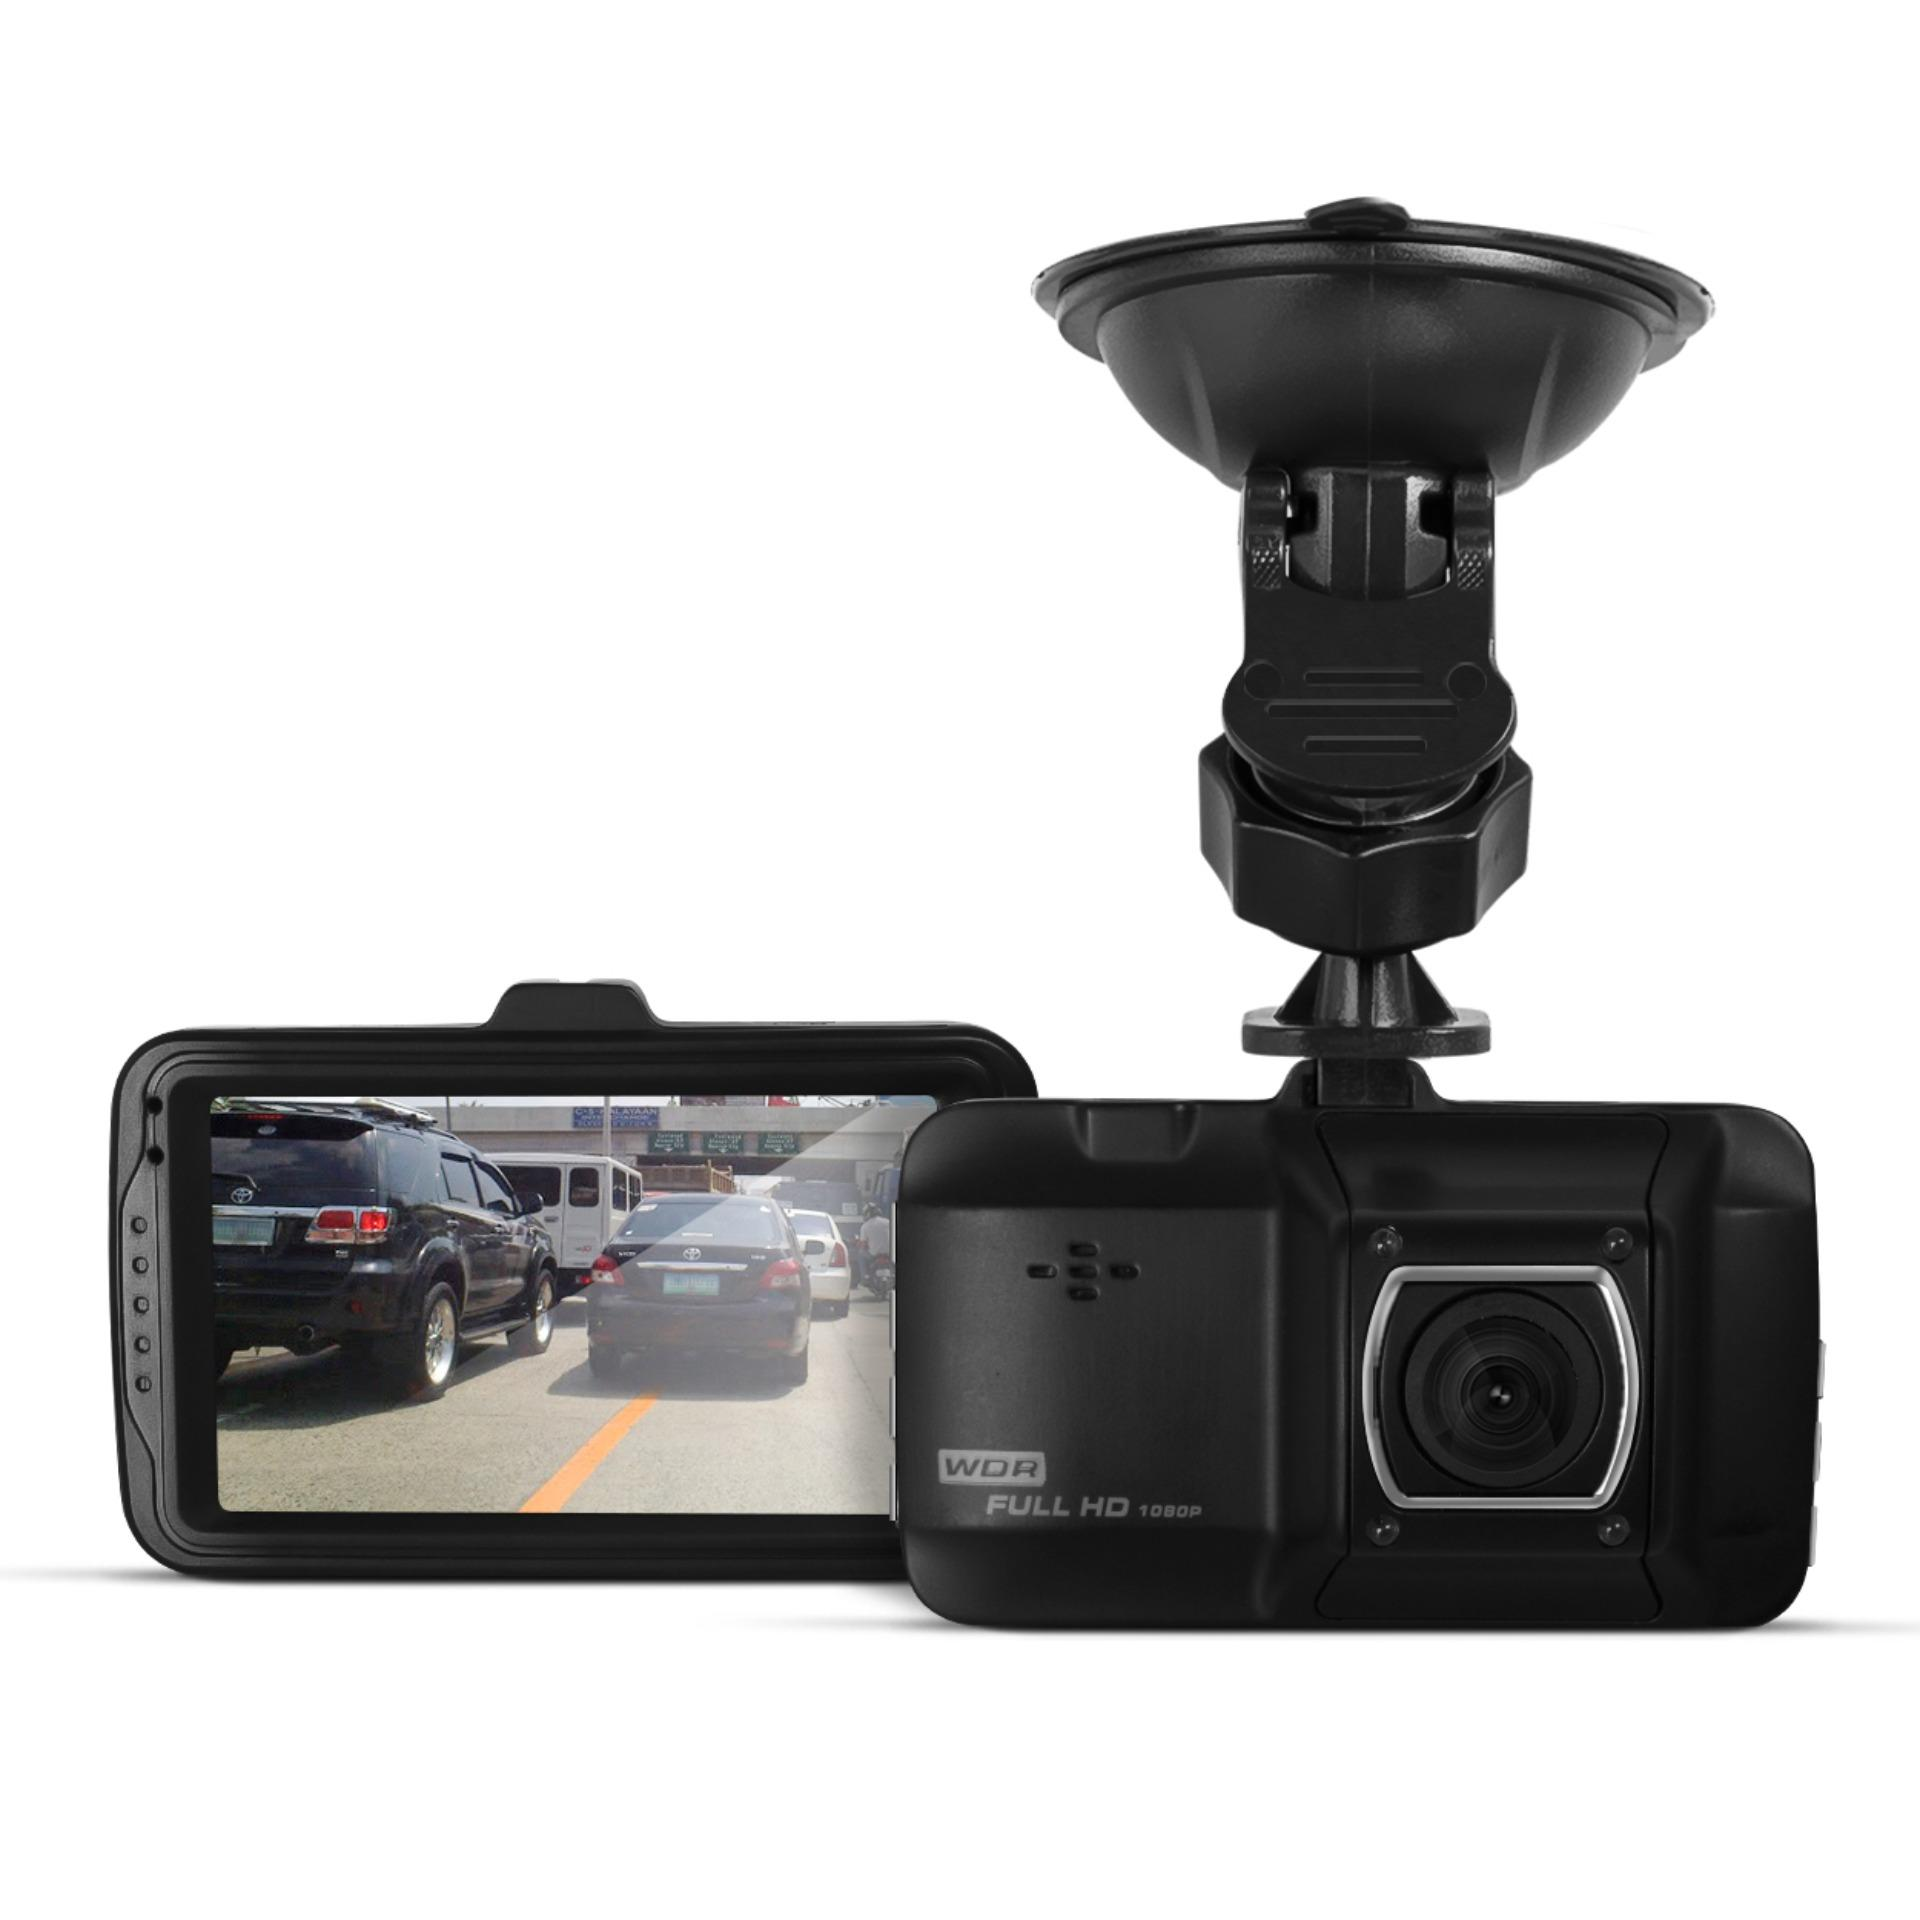 DS101 Vehicle Black Box Dashboard Camcorder Full HD 1080p (Black)